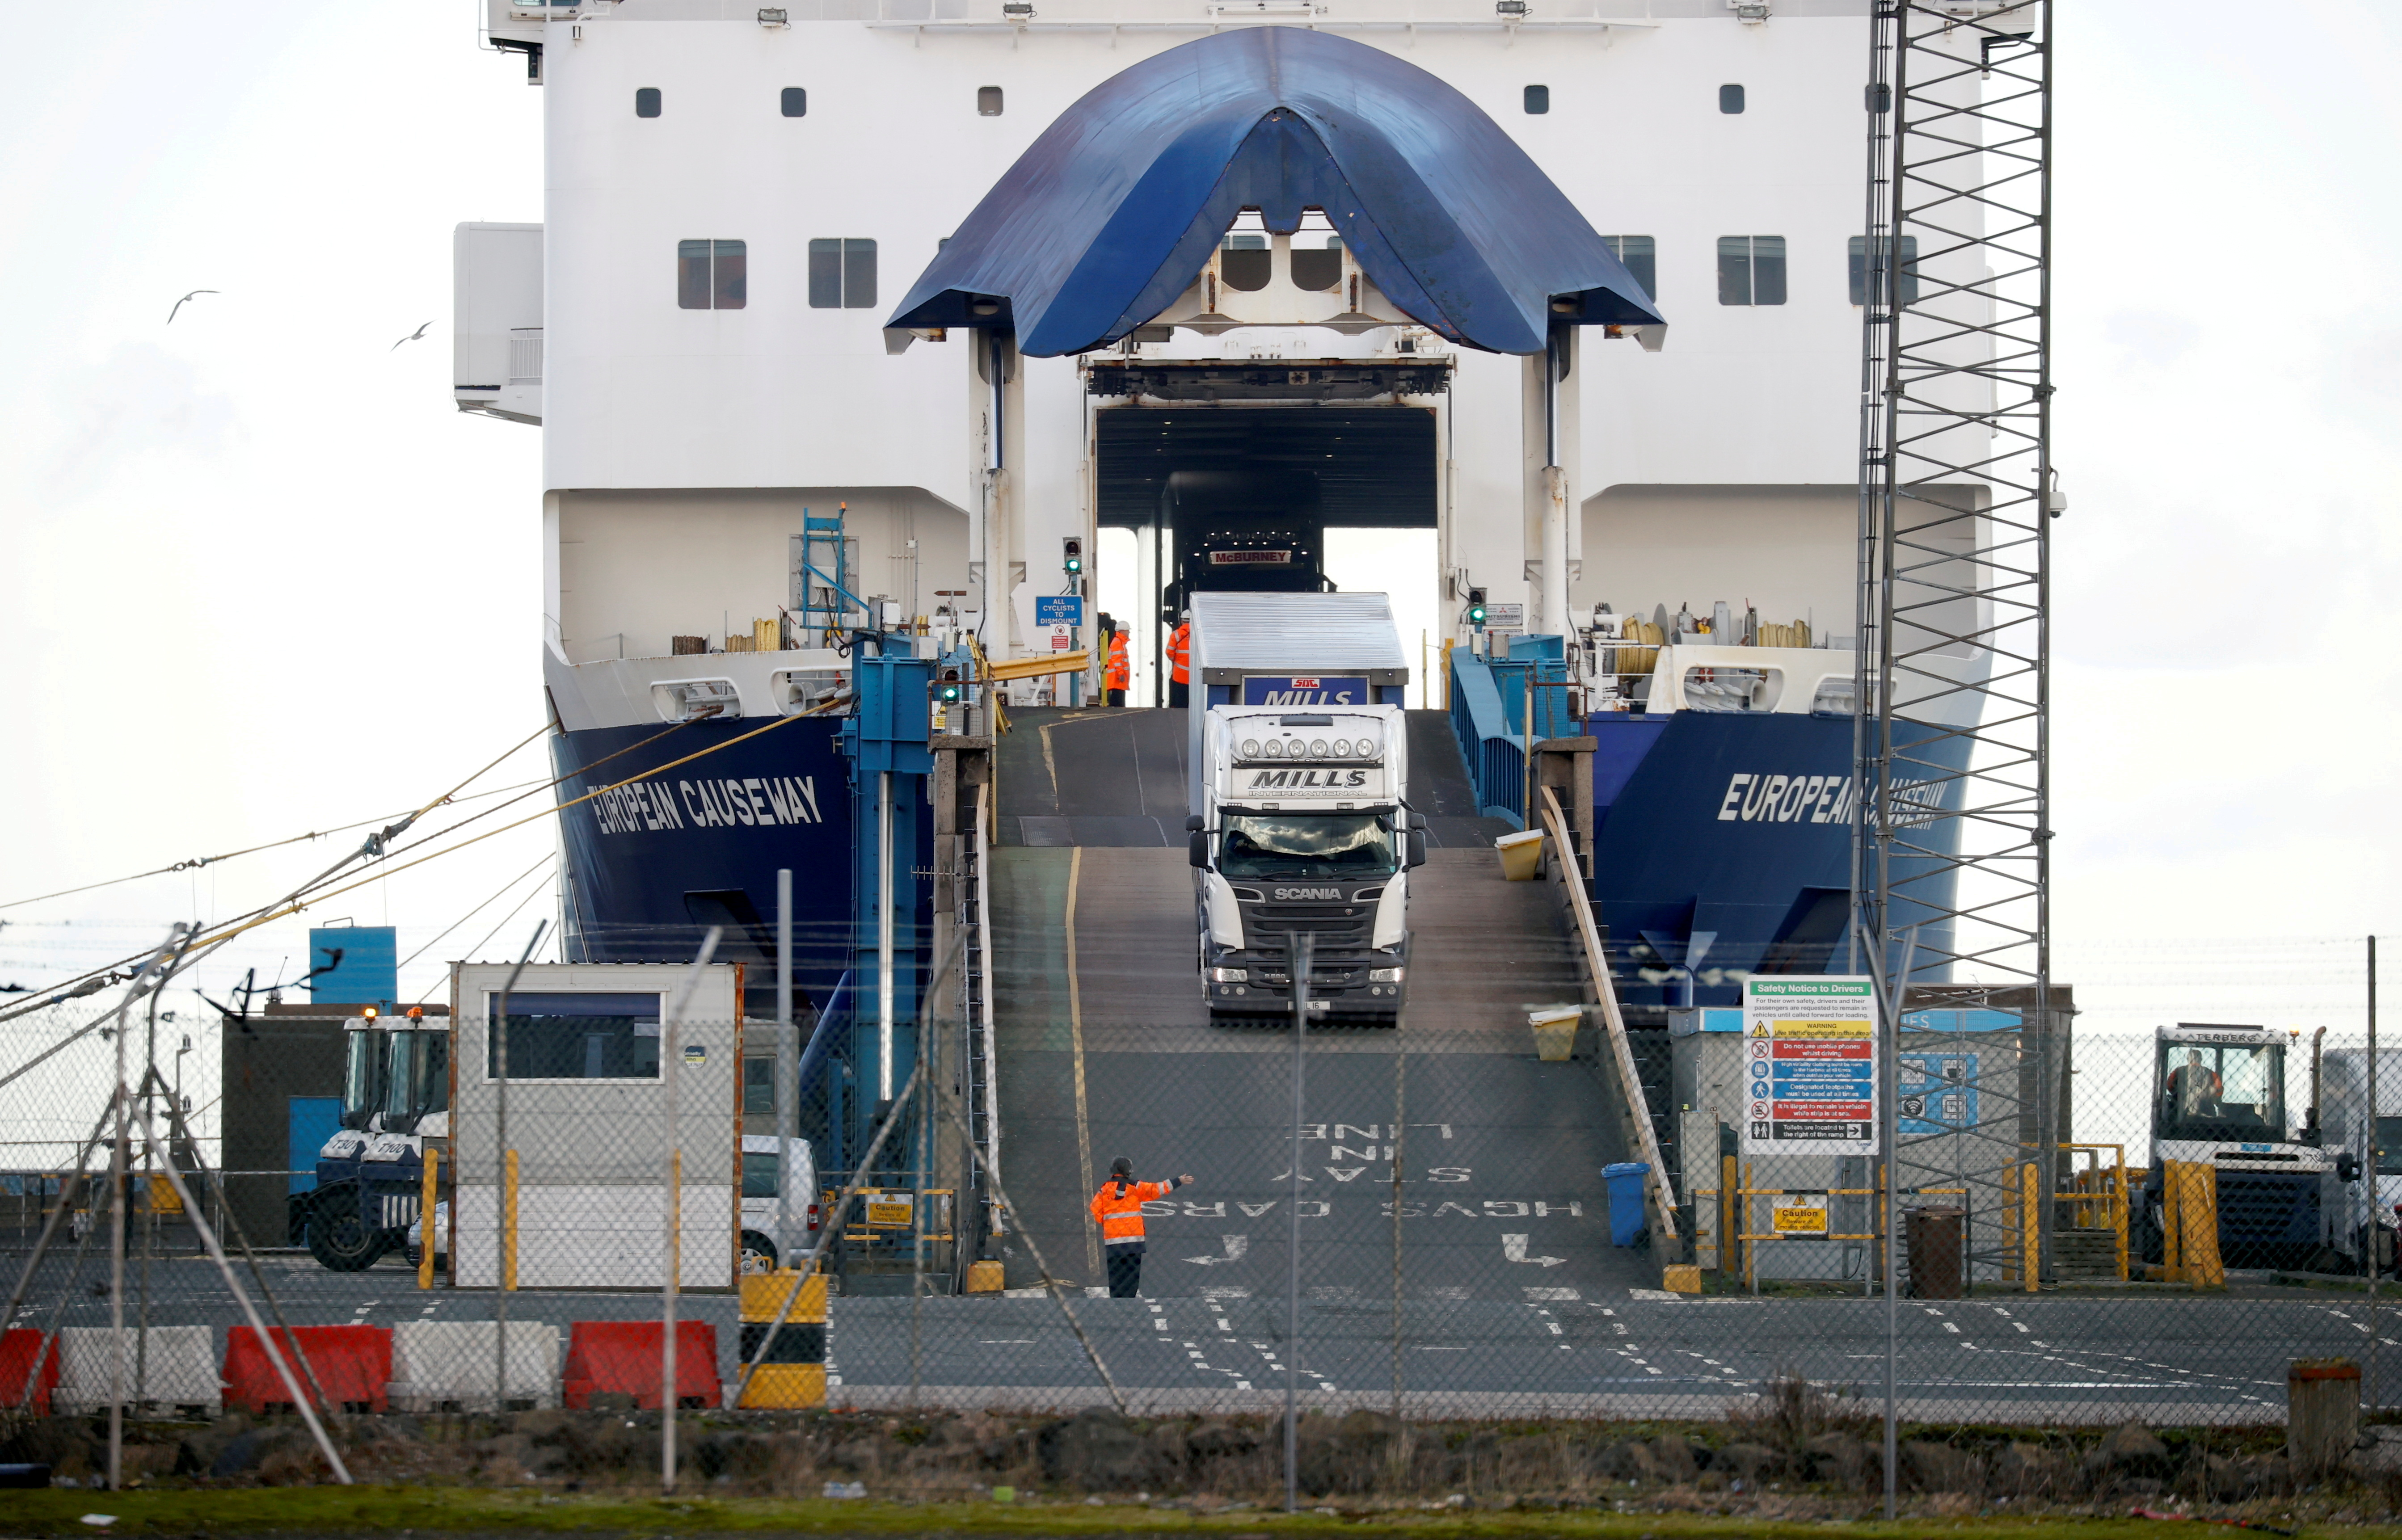 Lorries leave a ferry at the Port of Larne, Northern Ireland Britain January 1, 2021. REUTERS/Phil Noble/File Photo